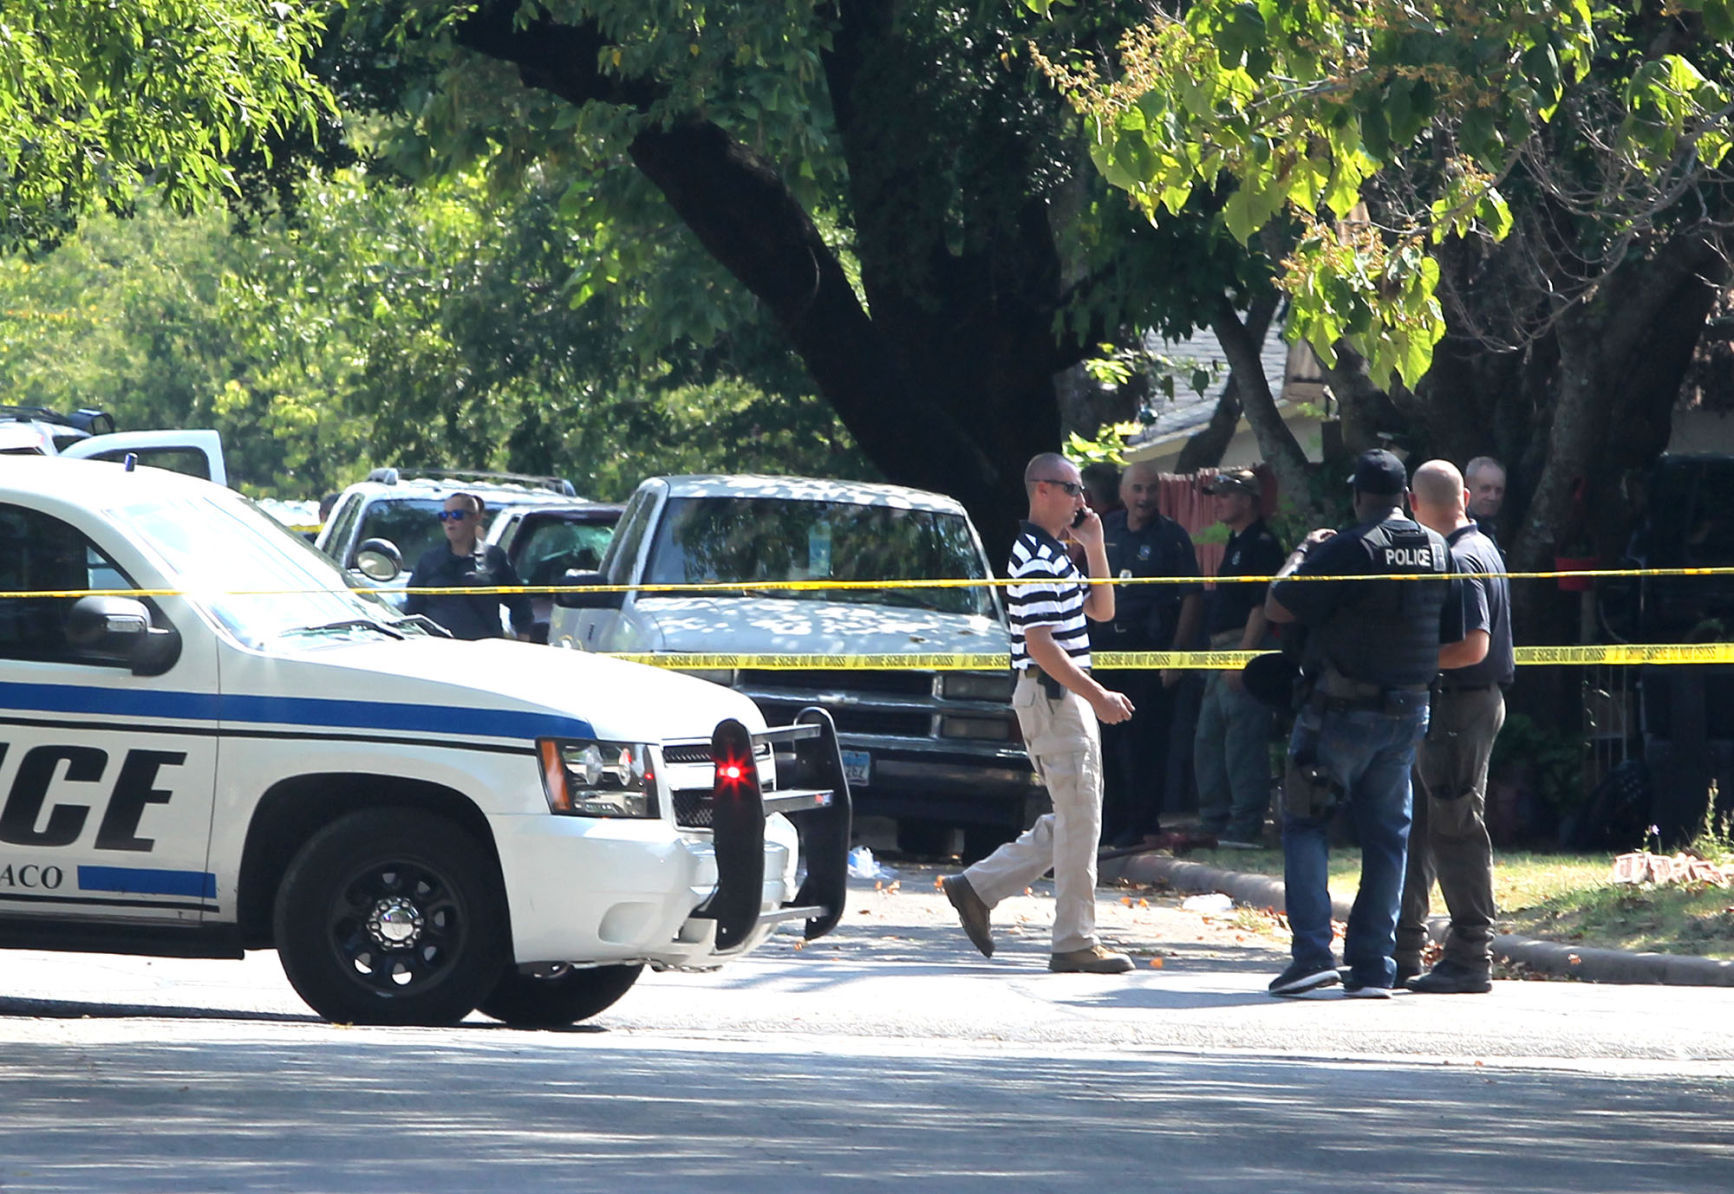 Suspect dead, officer severely injured after serving search warrant in Waco